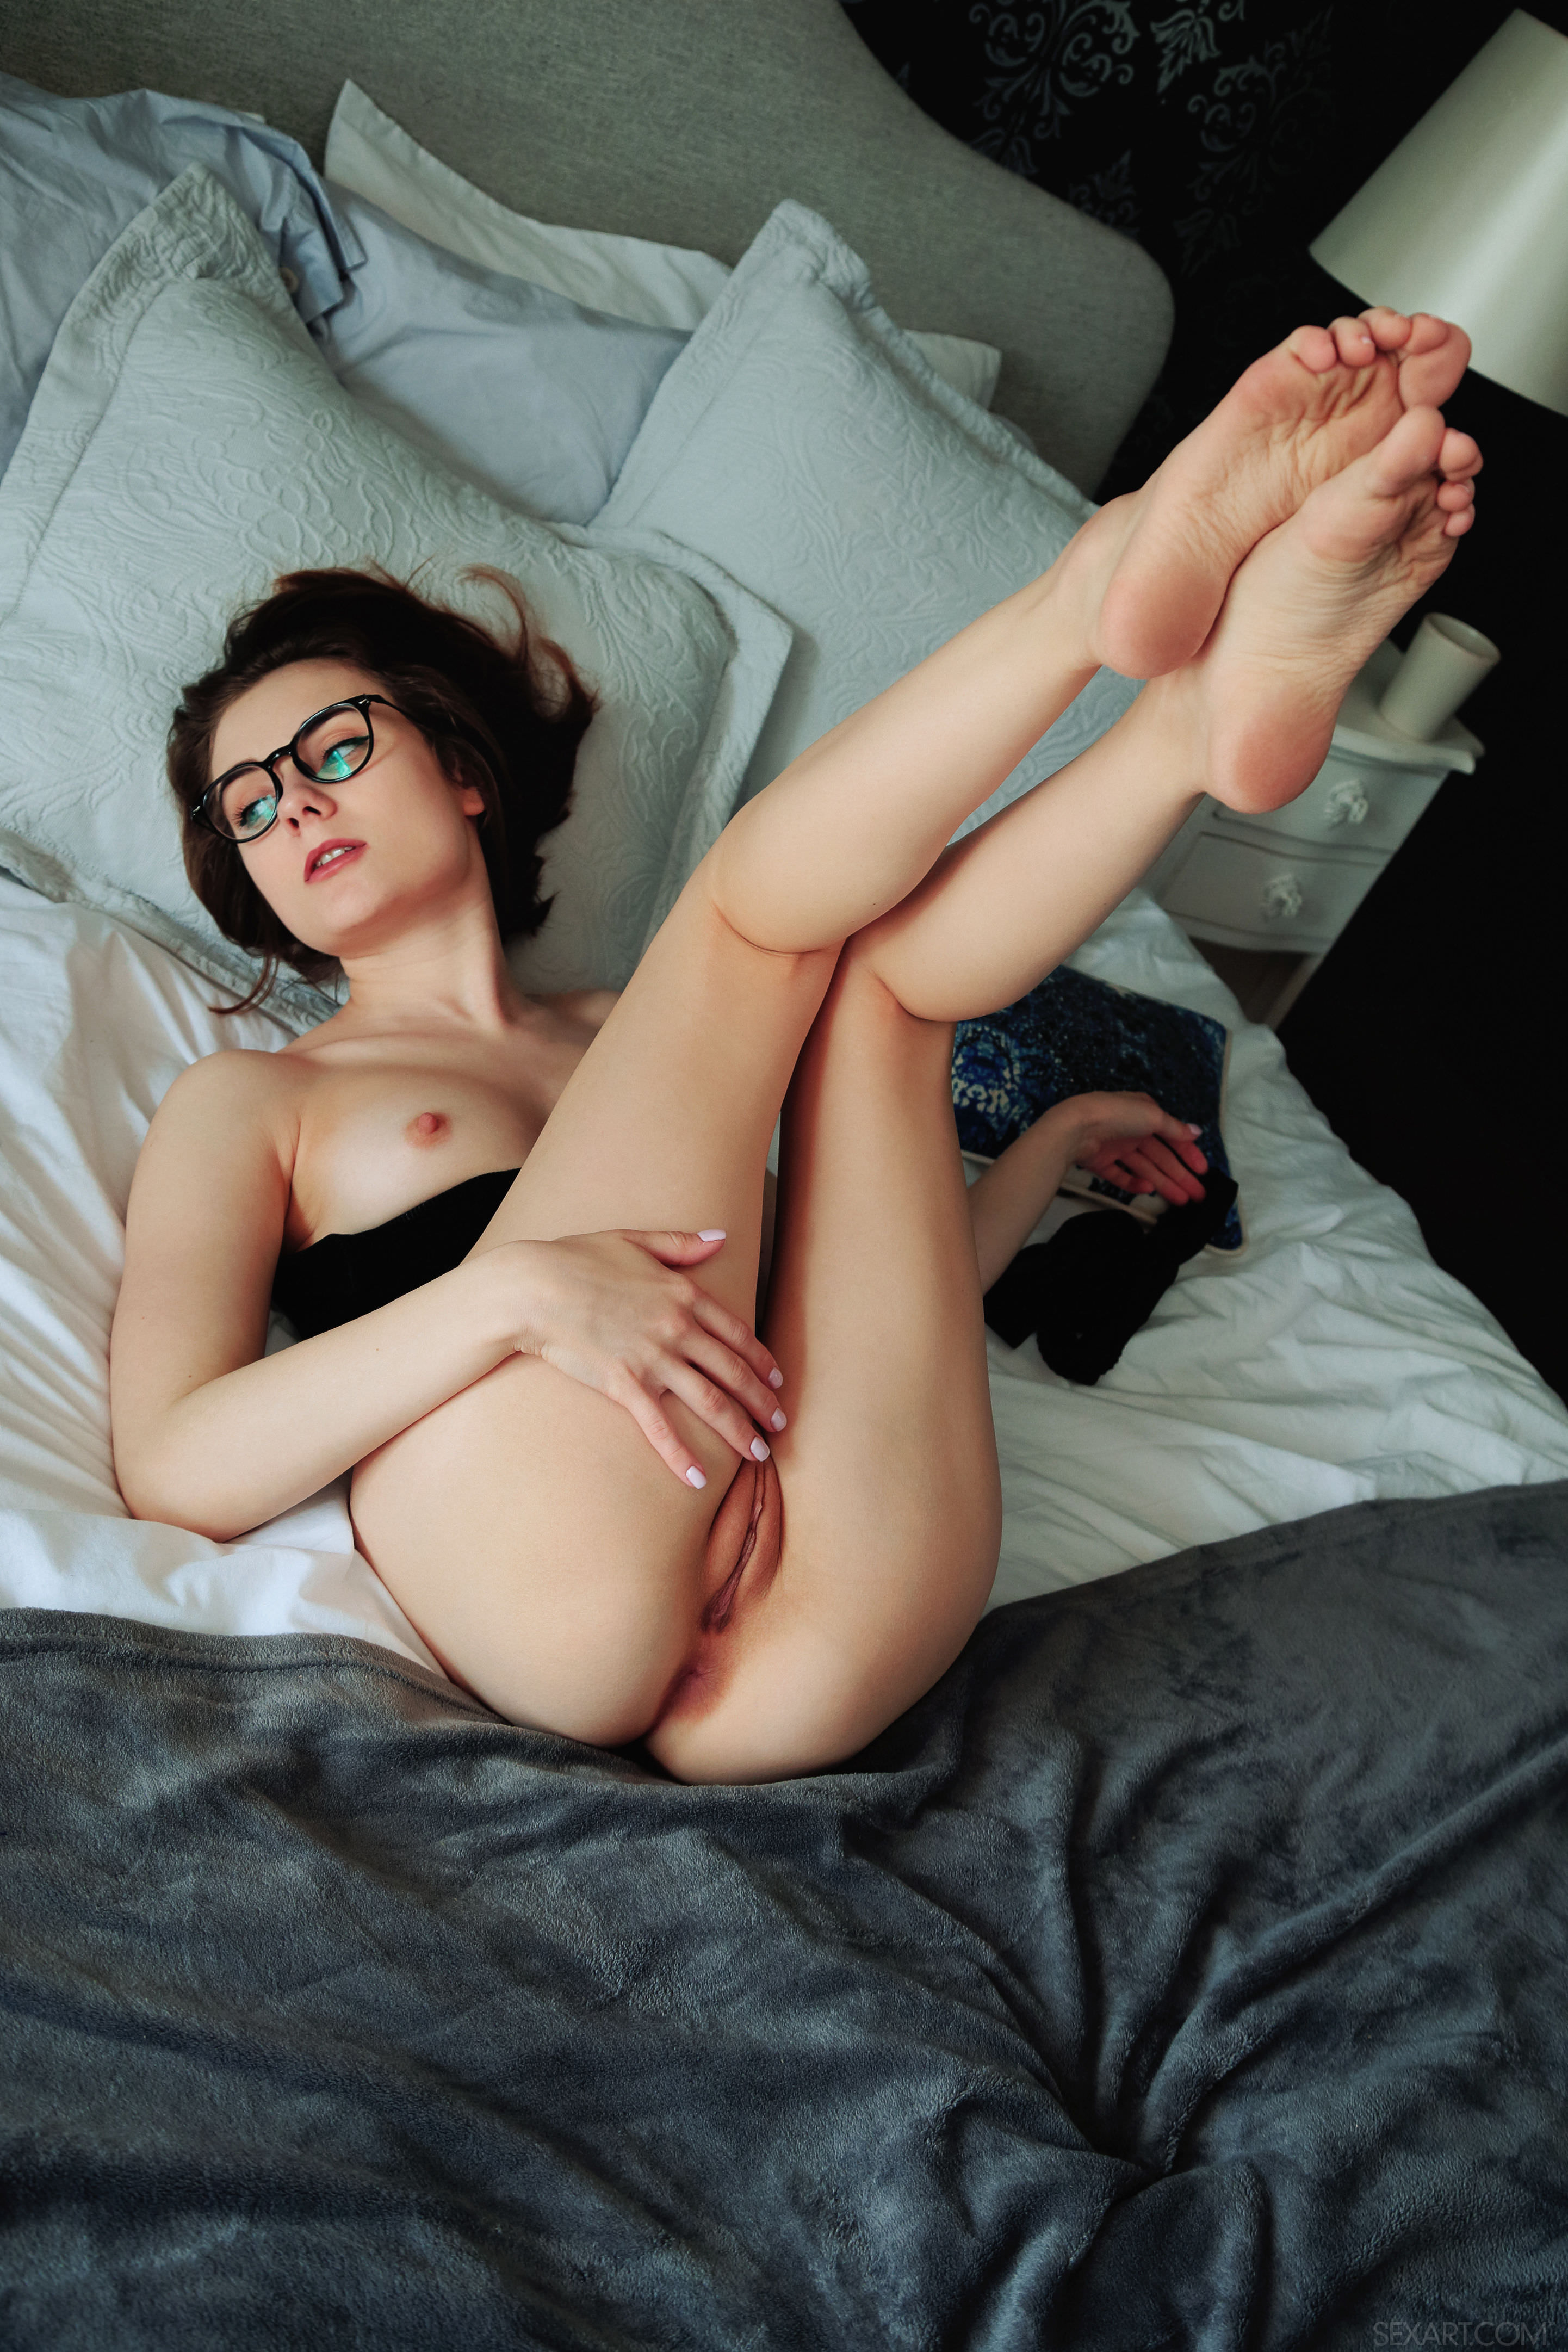 nude-girls-with-legs-up-photo-mix-vol3-05